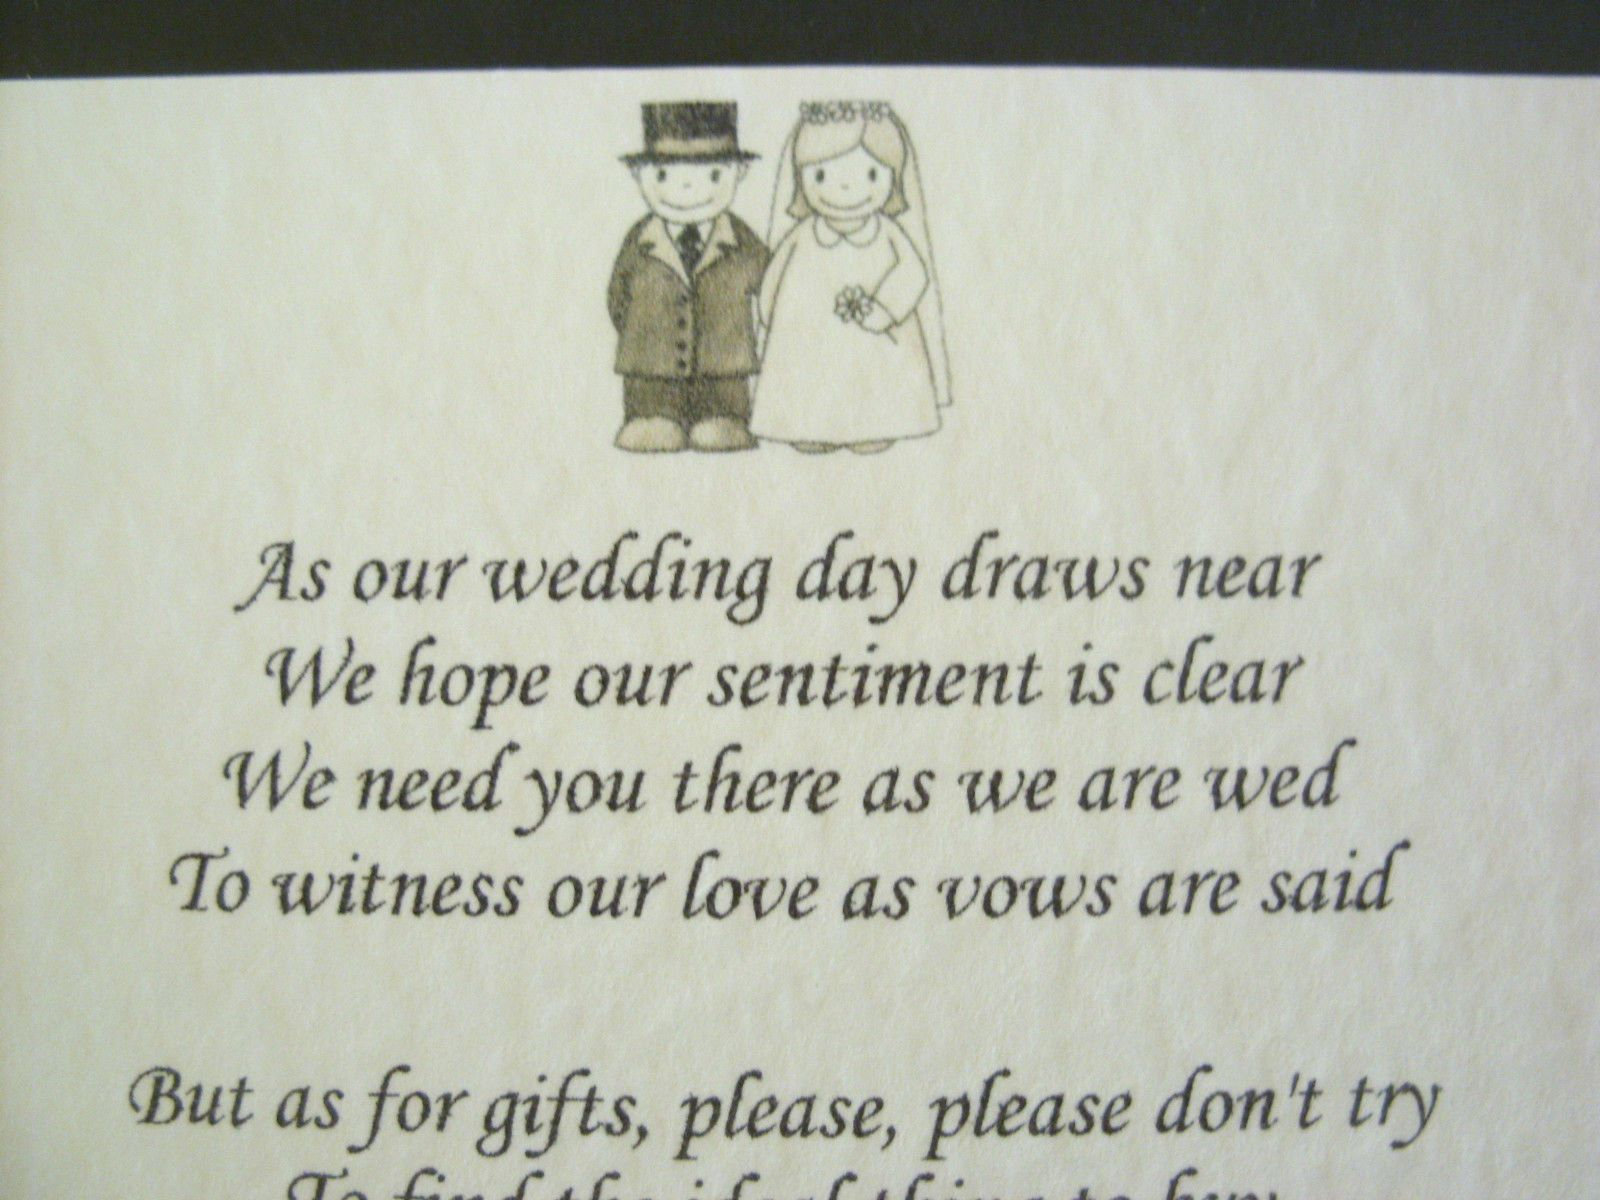 20 Wedding Poems Asking For Money Gifts Not Presents Ref No 4 In Home Furniture